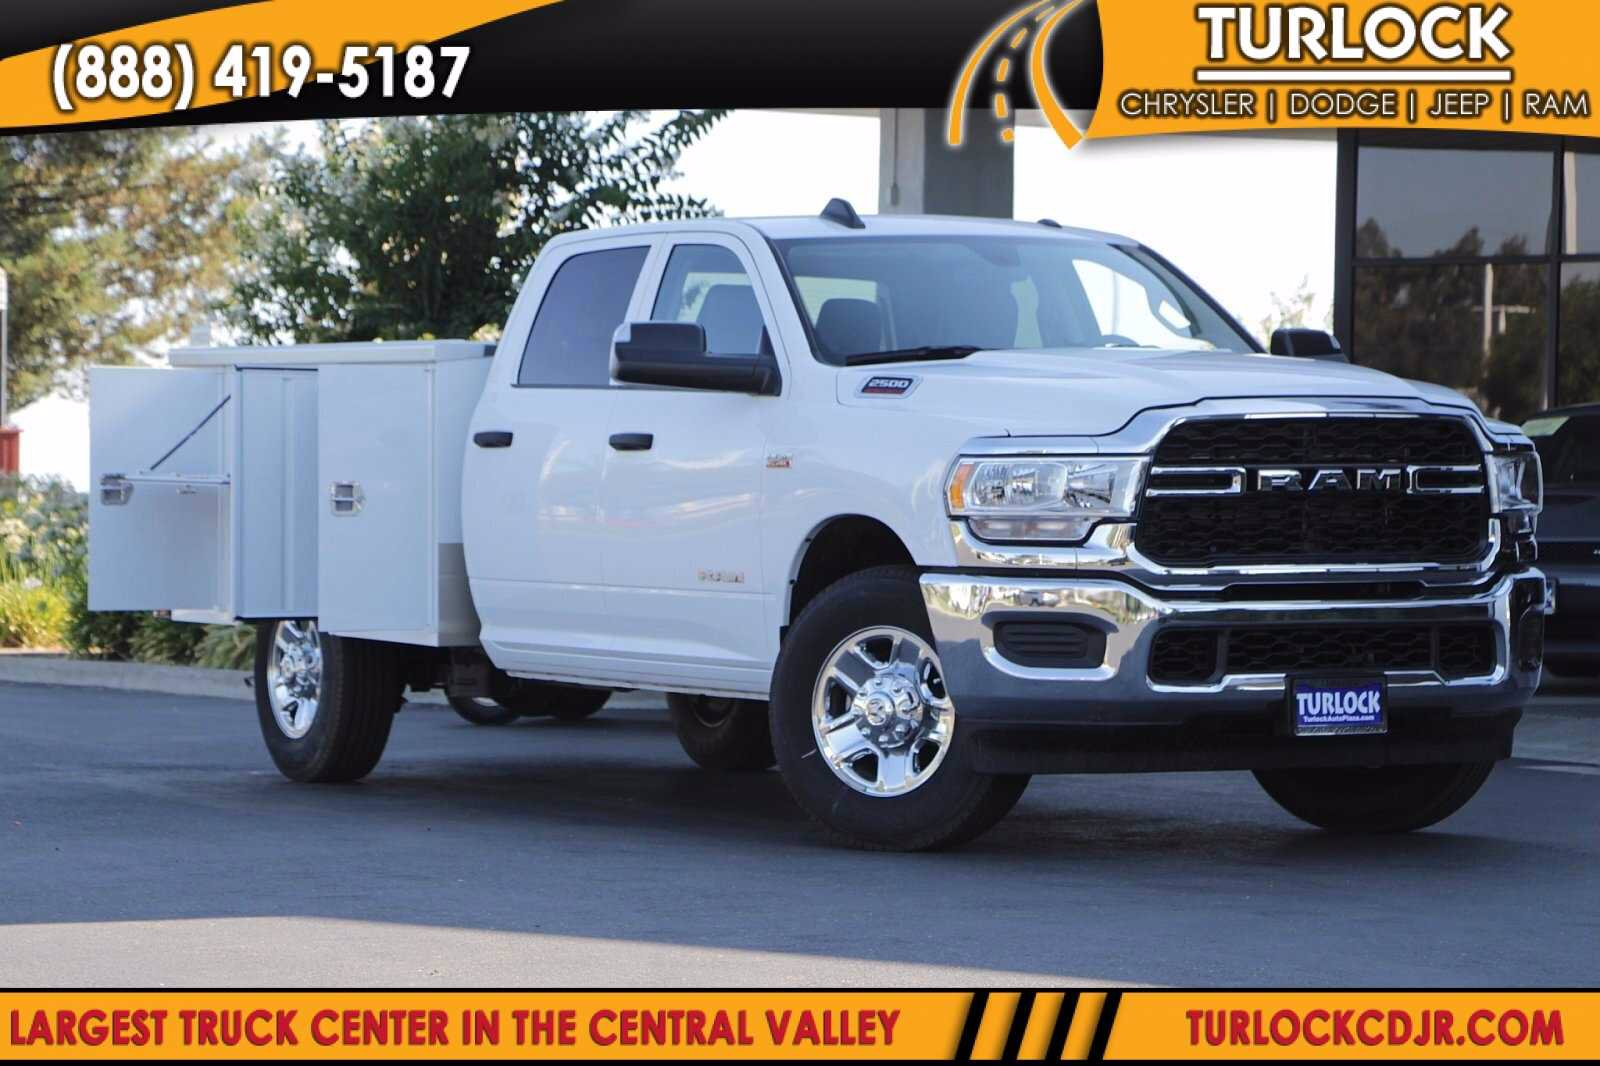 2020 RAM 2500 Tradesman photo